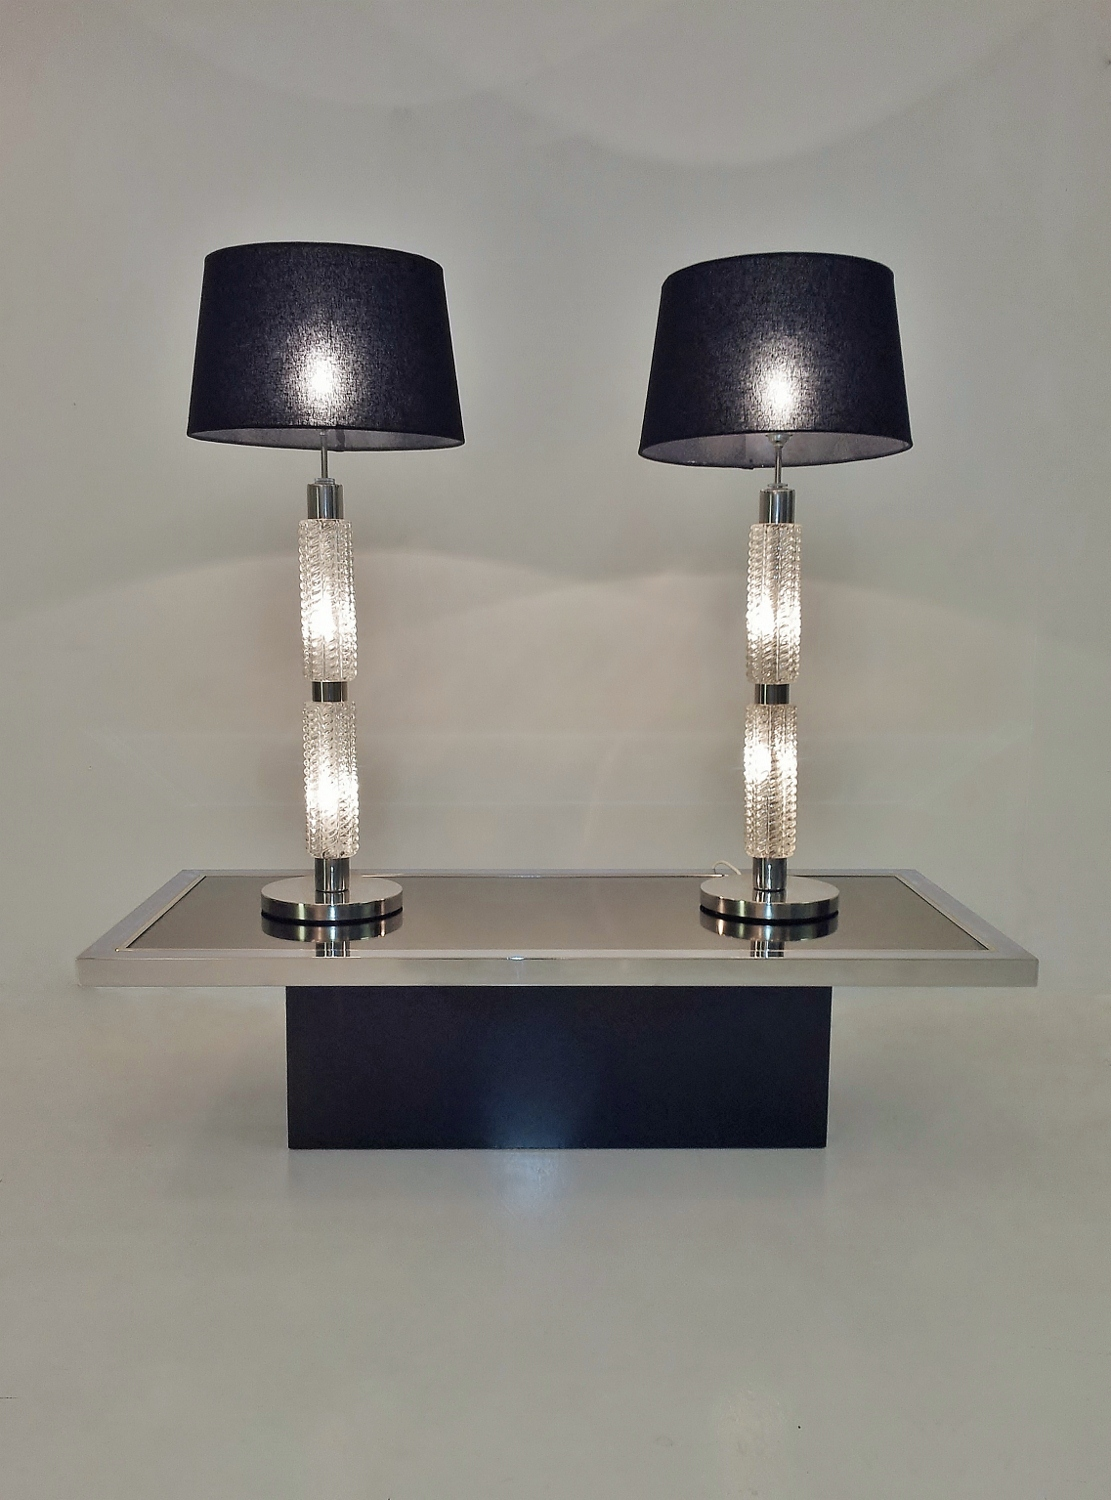 Table lamp with illuminated glass base